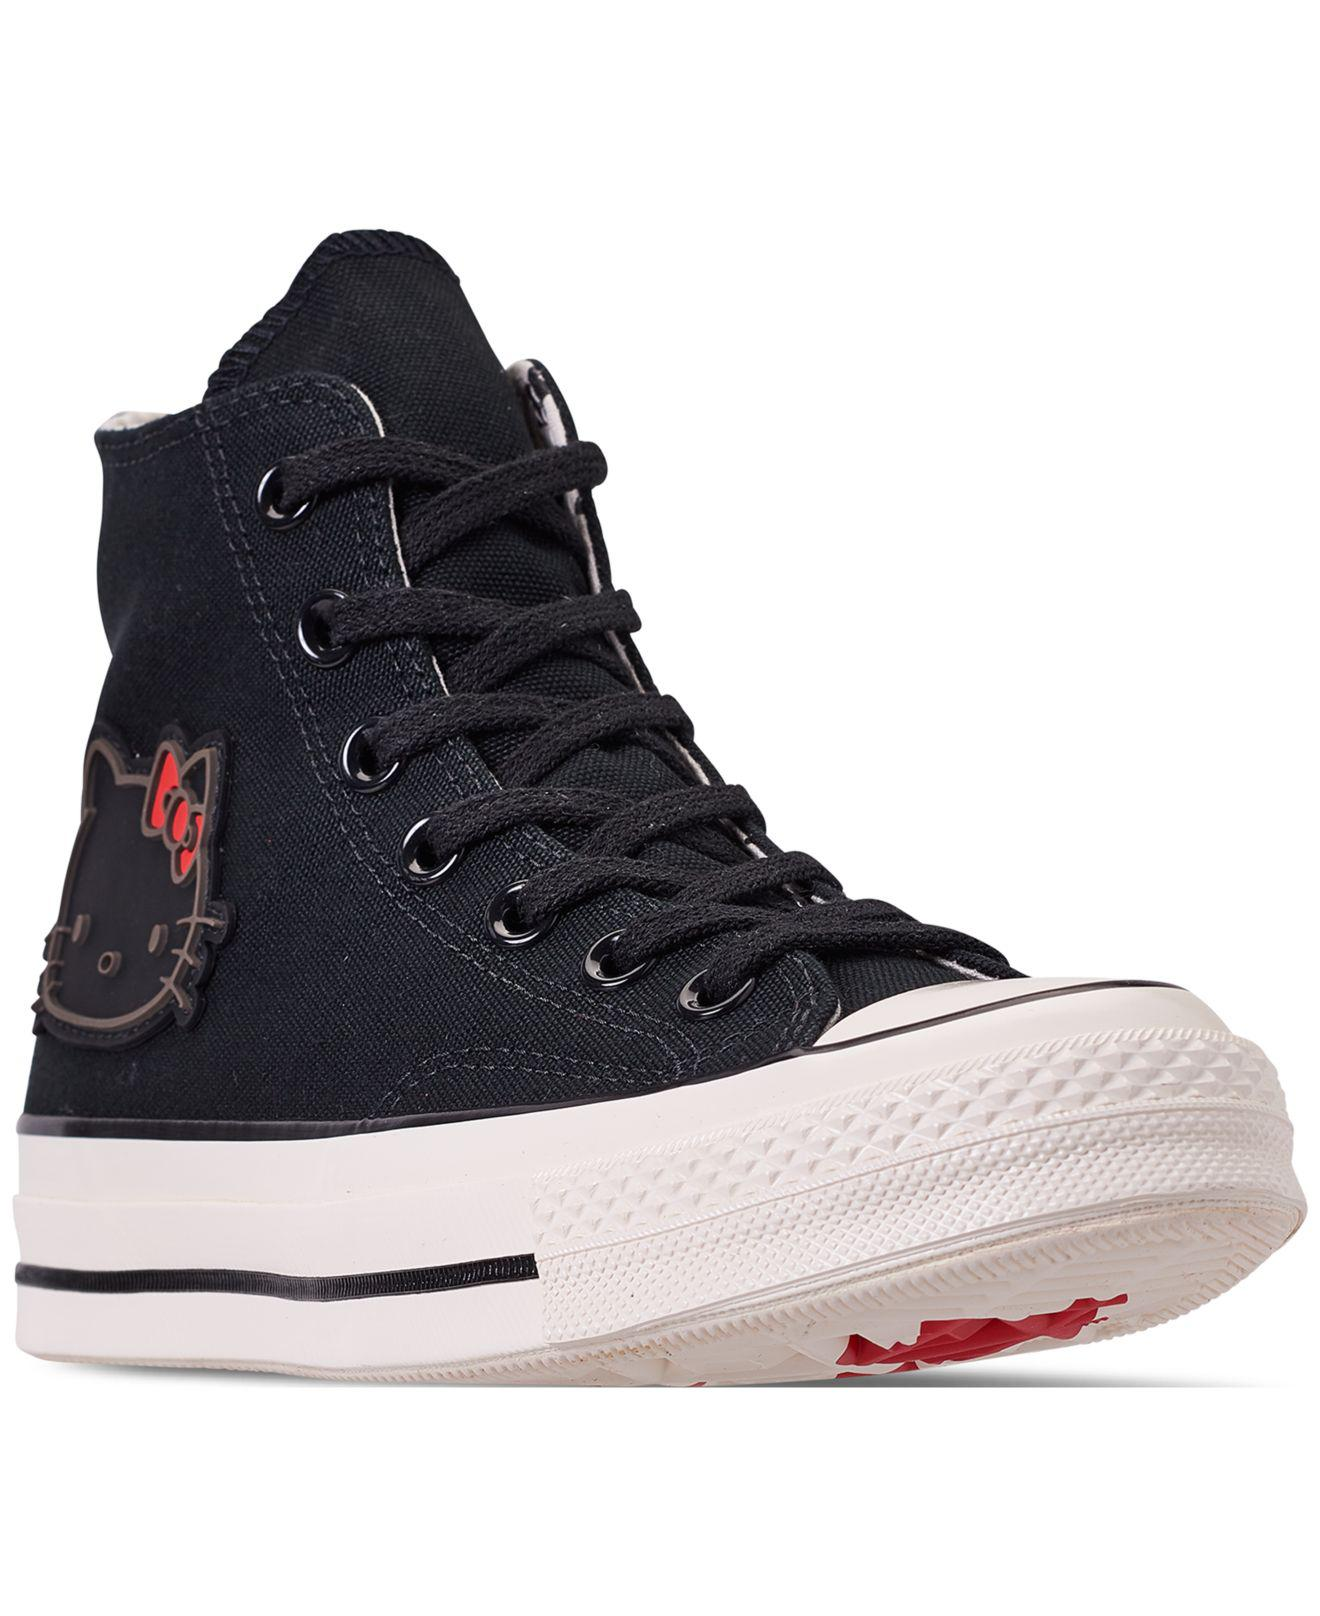 8ee28efcf1b8 Lyst - Converse Unisex Chuck Taylor 70 Hello Kitty High Top Casual ...